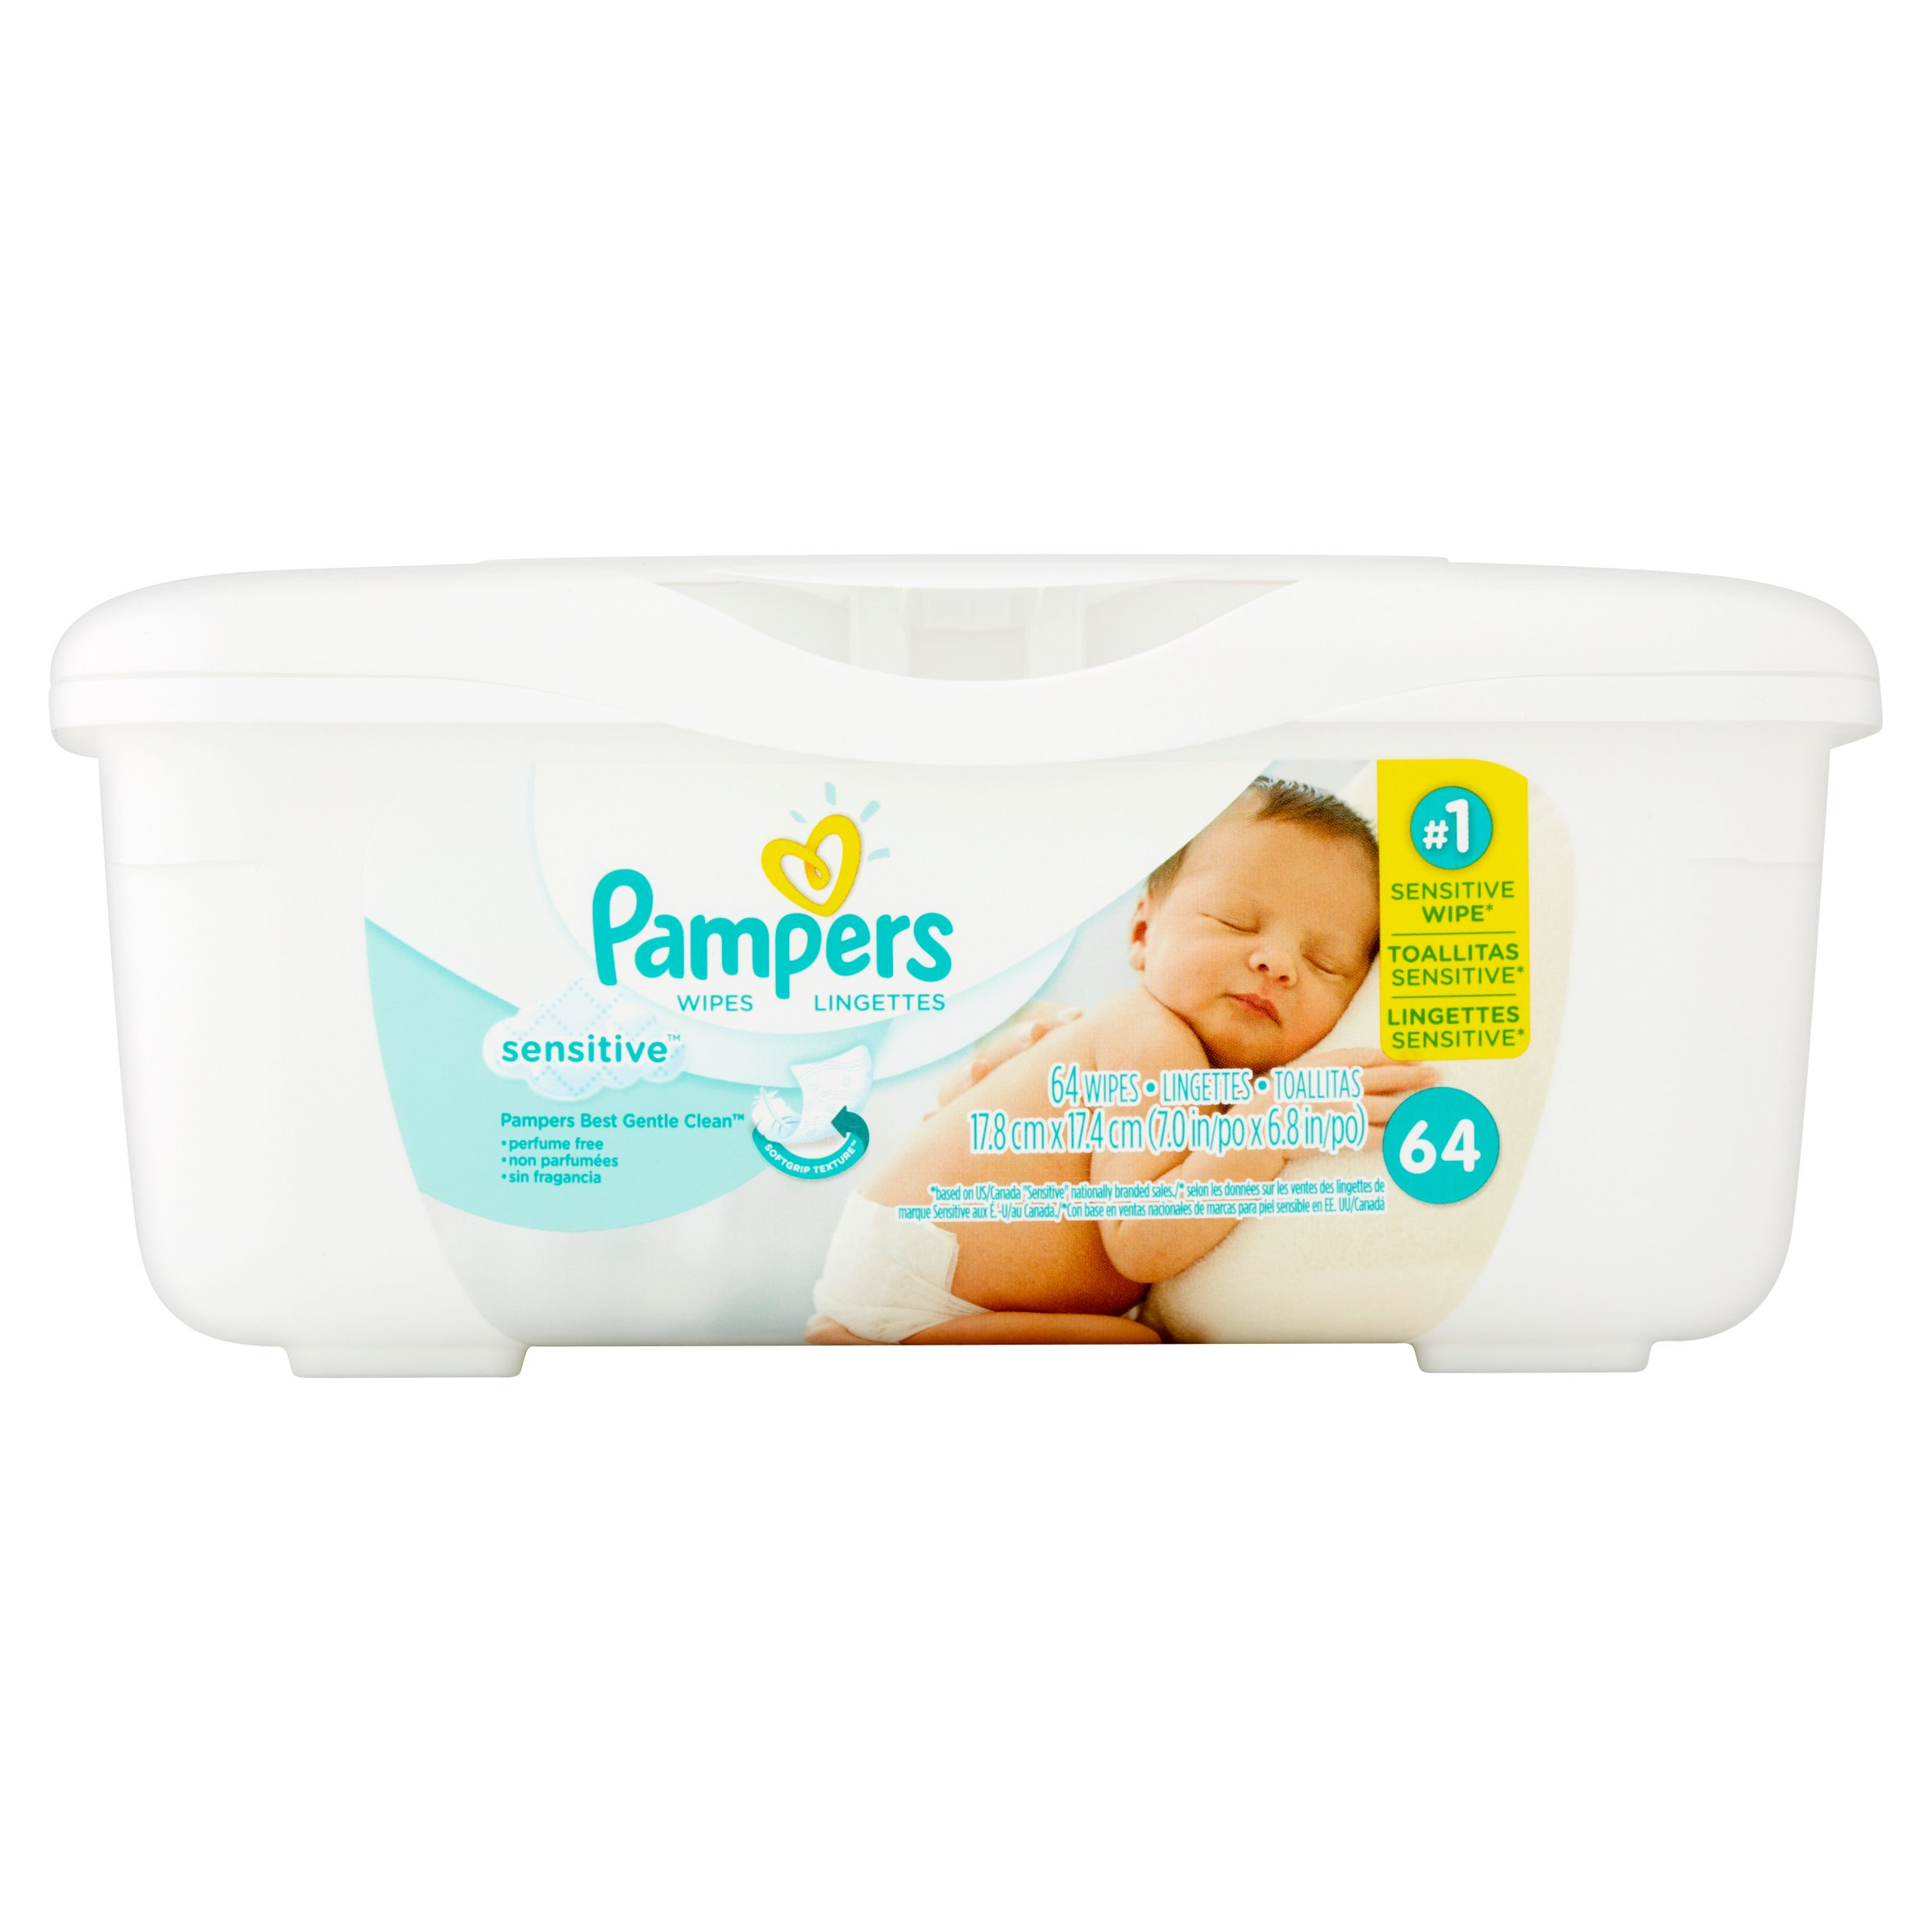 Pampers Sensitive Wipes, 64 ct